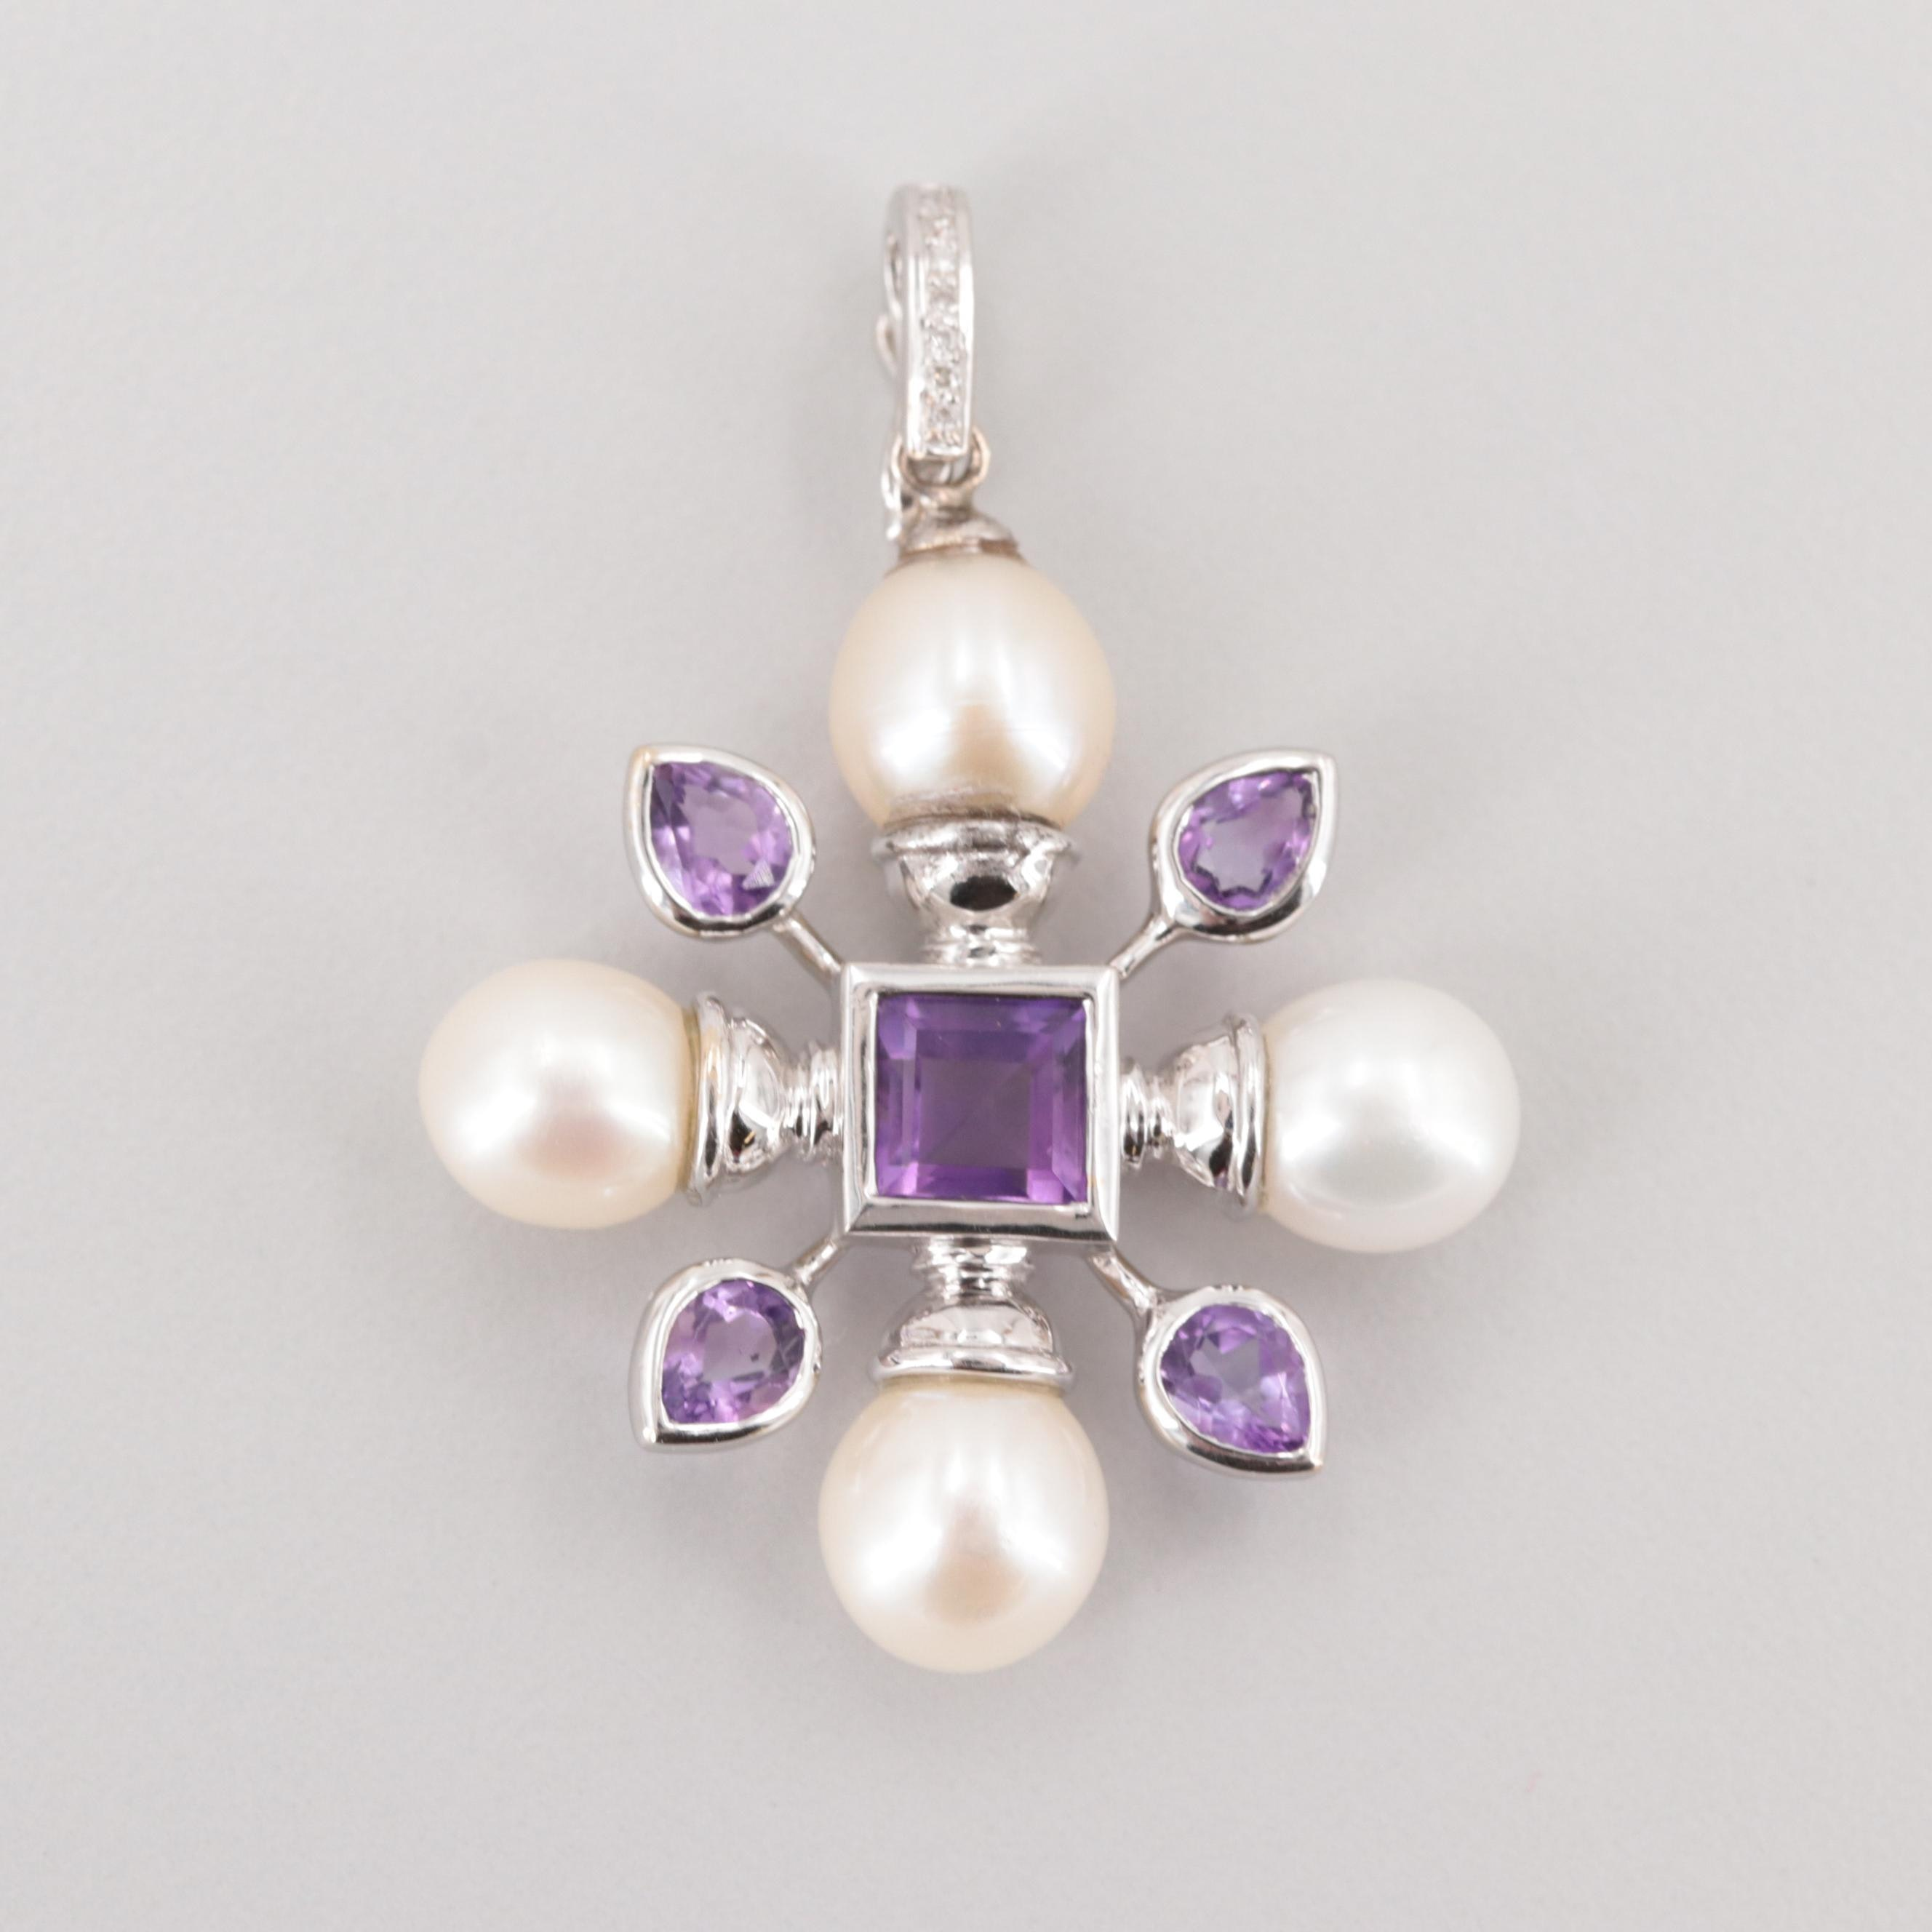 18K White Gold Amethyst, Cultured Pearl, and Diamond Enhancer Pendant